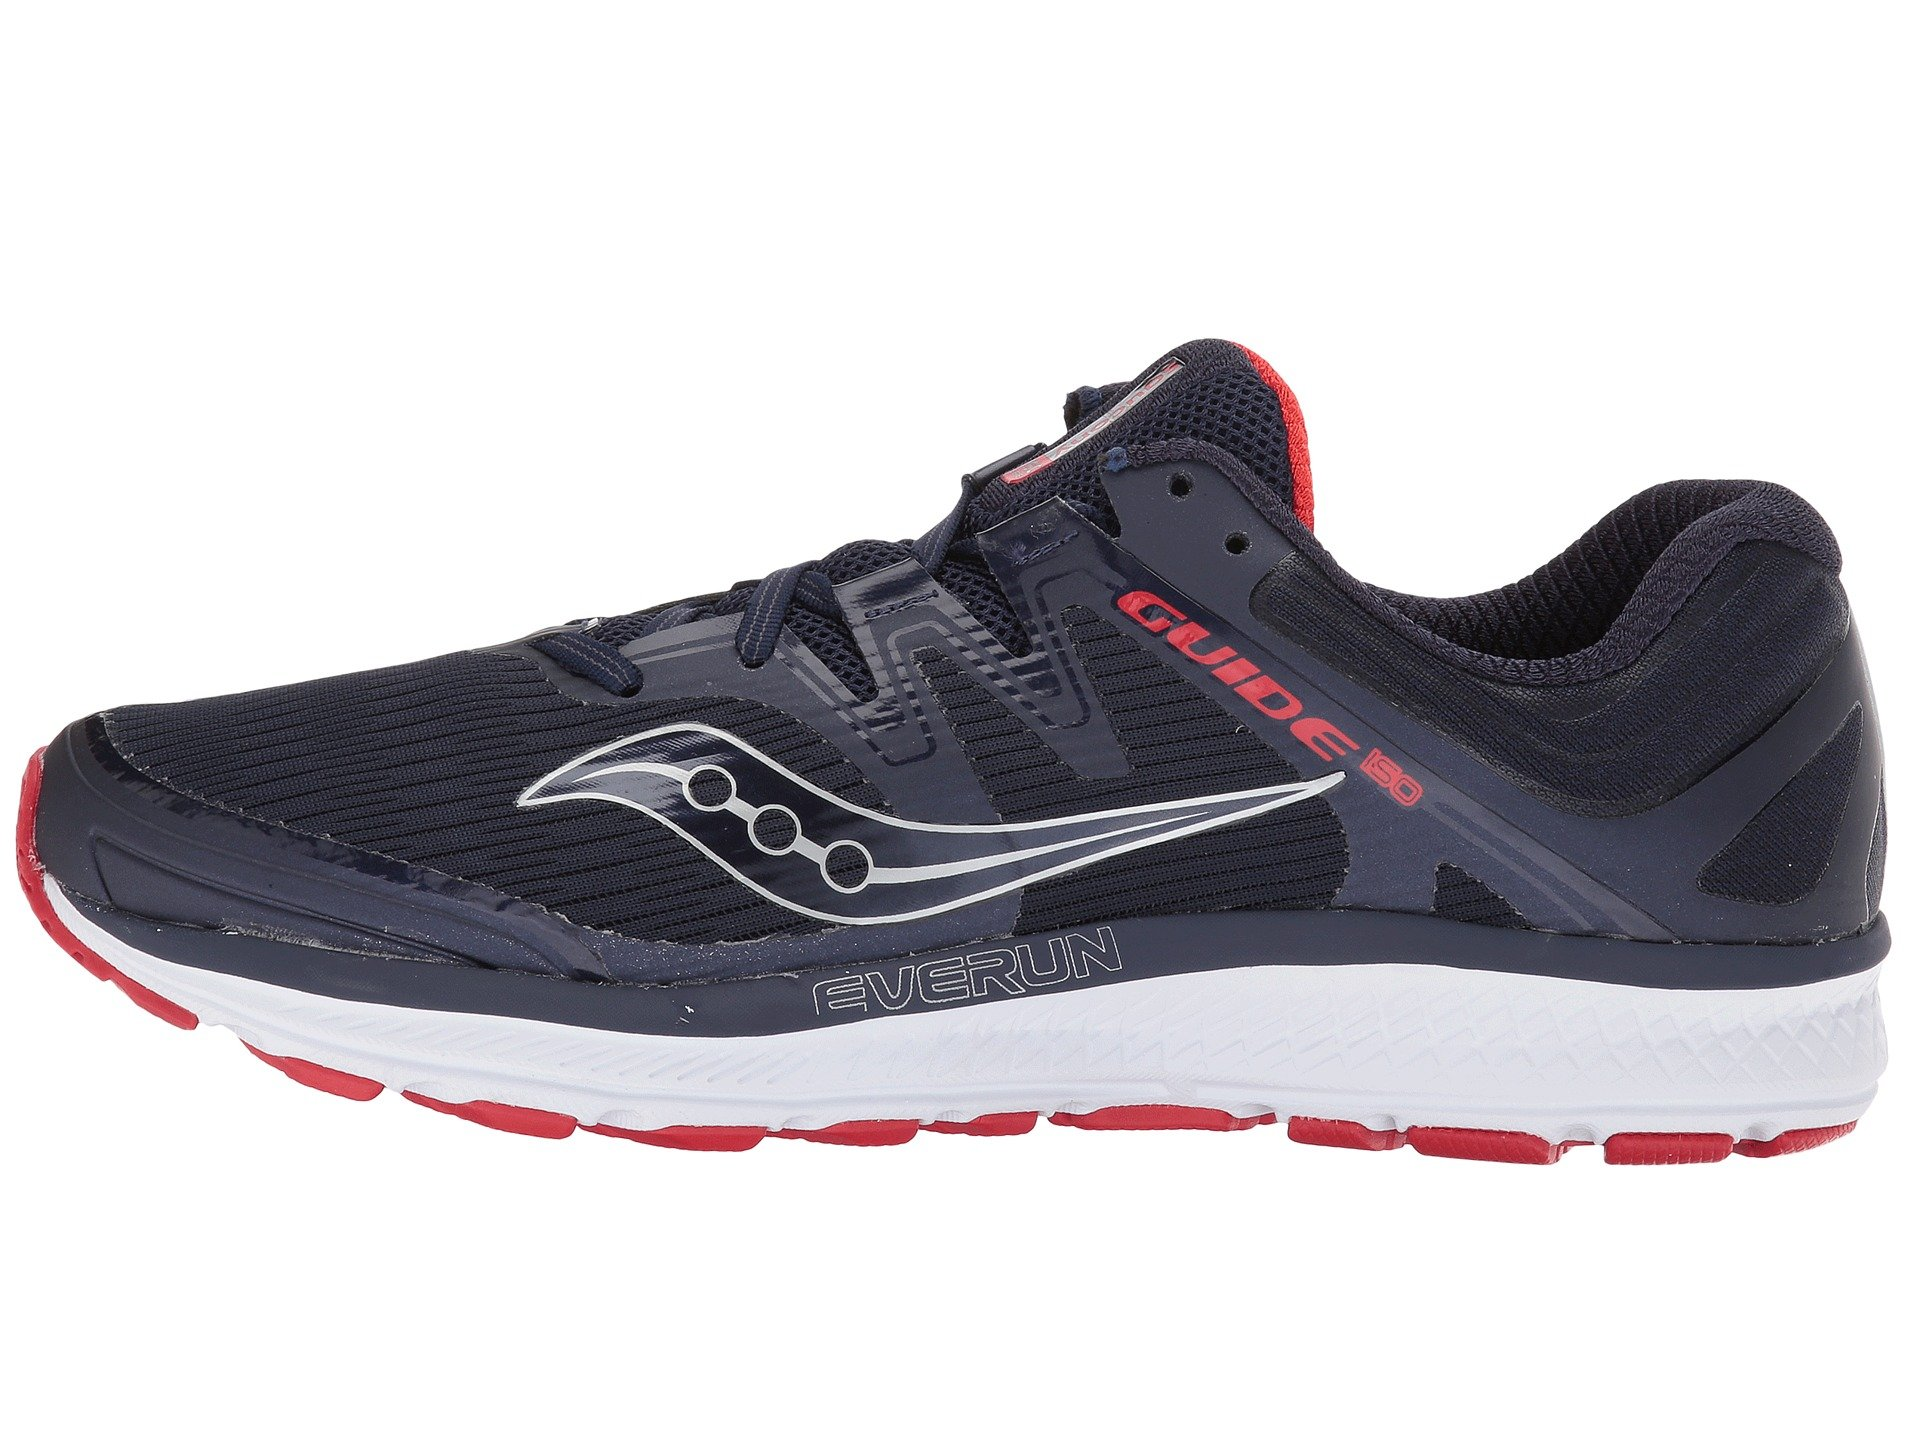 Iso Saucony Guide Navy Guide Iso Saucony red vp8qwc1